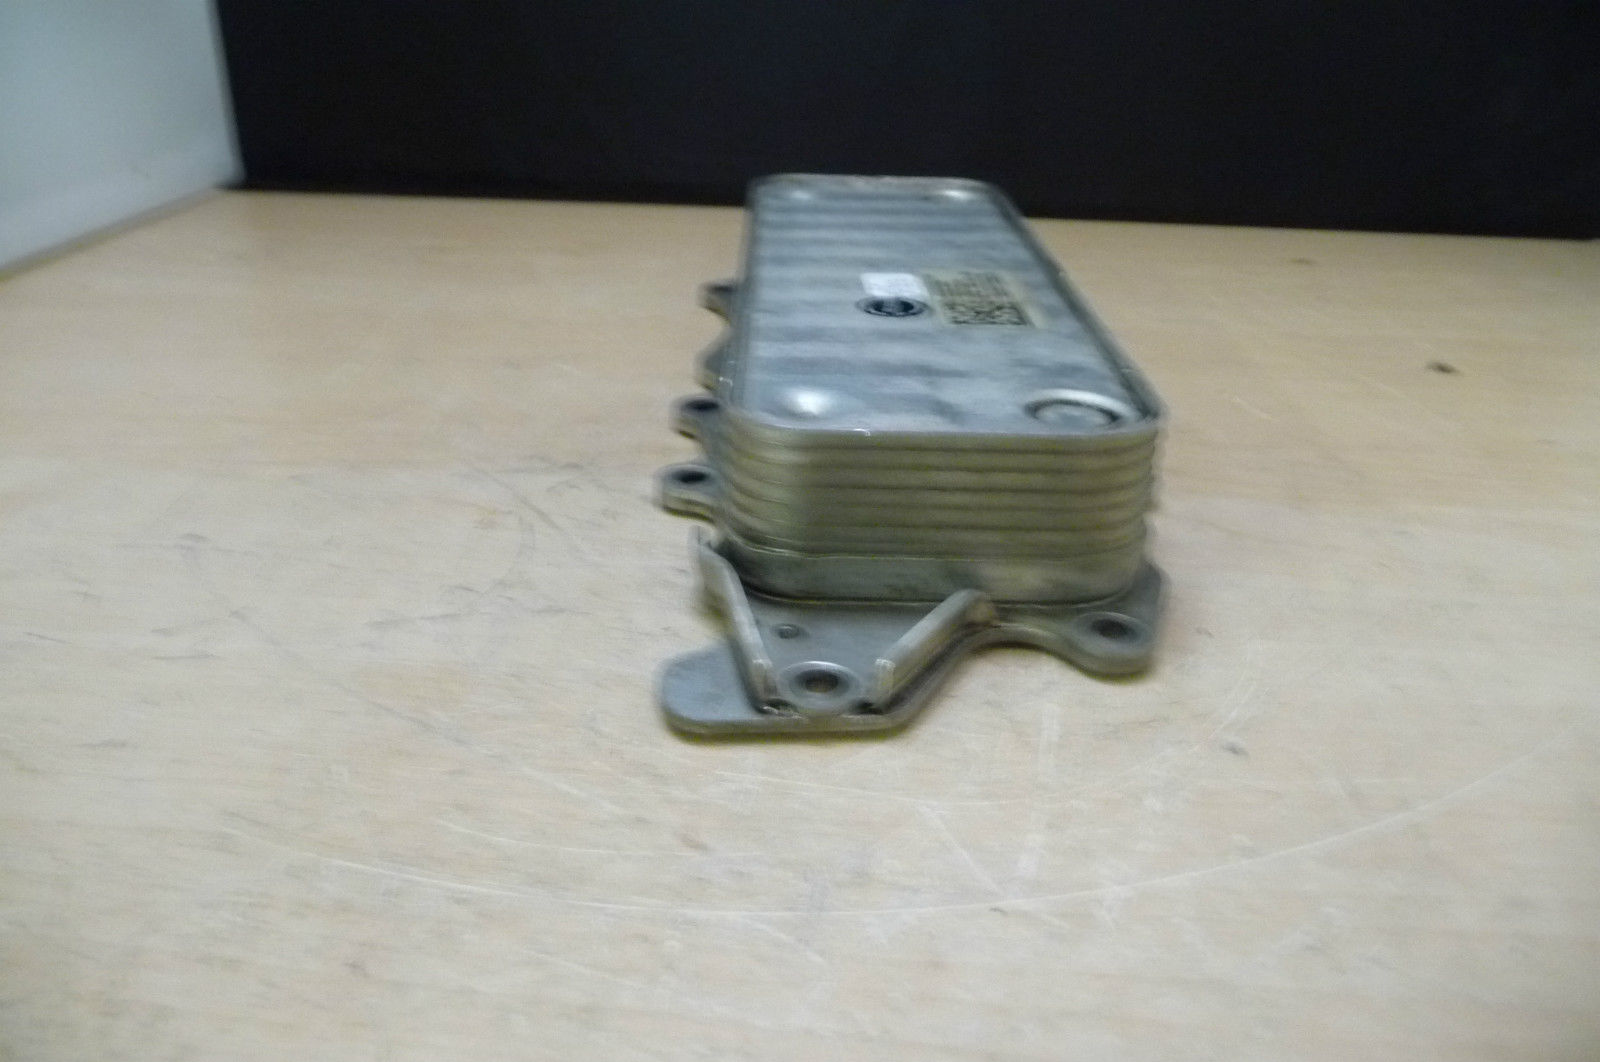 Mercedes benz e r s class gl ml sprinter engine oil cooler for Mercedes benz oil